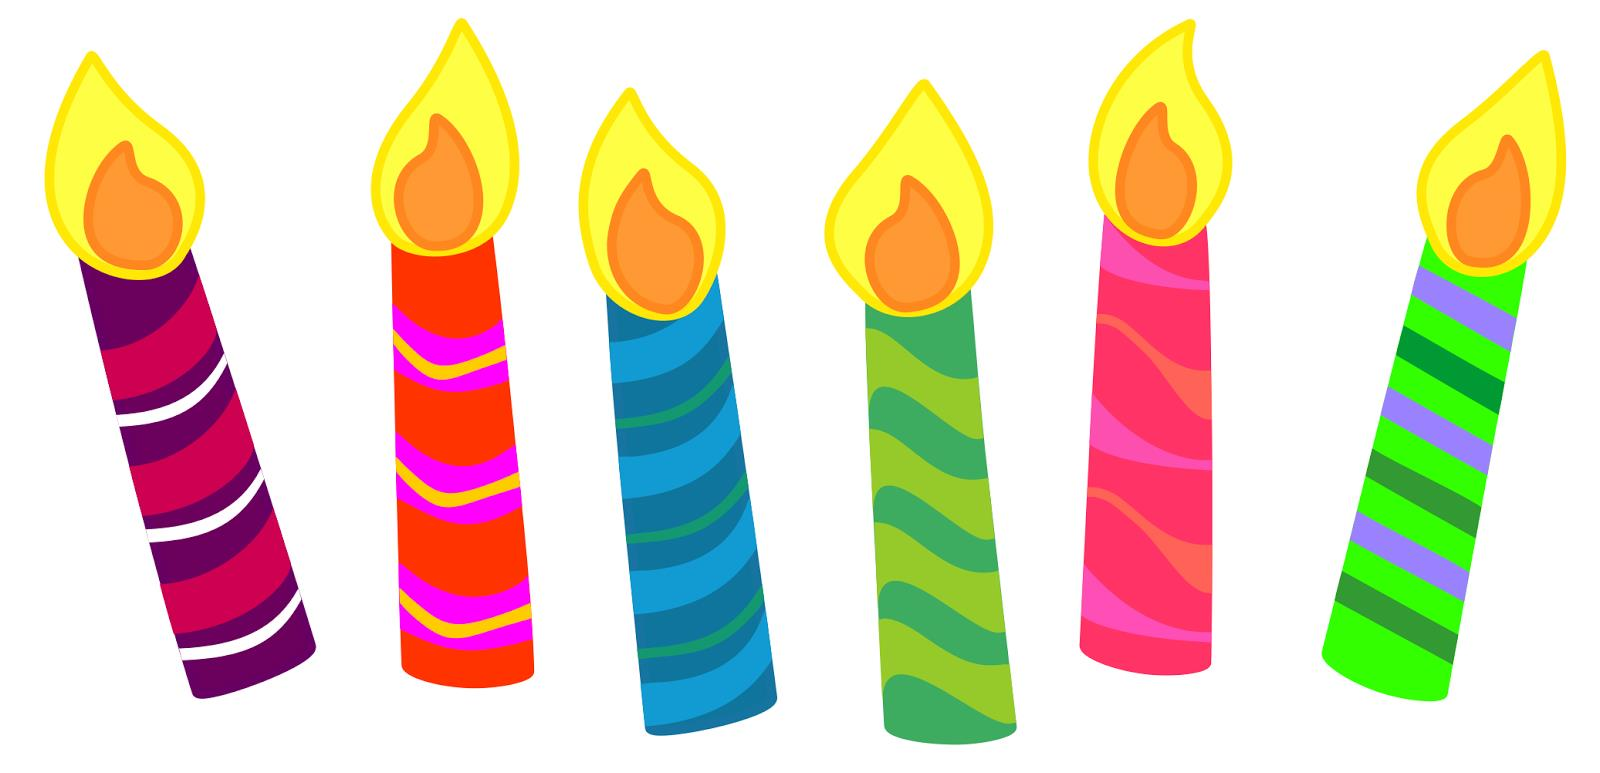 Candles clipart kid. Birthday candle best happy